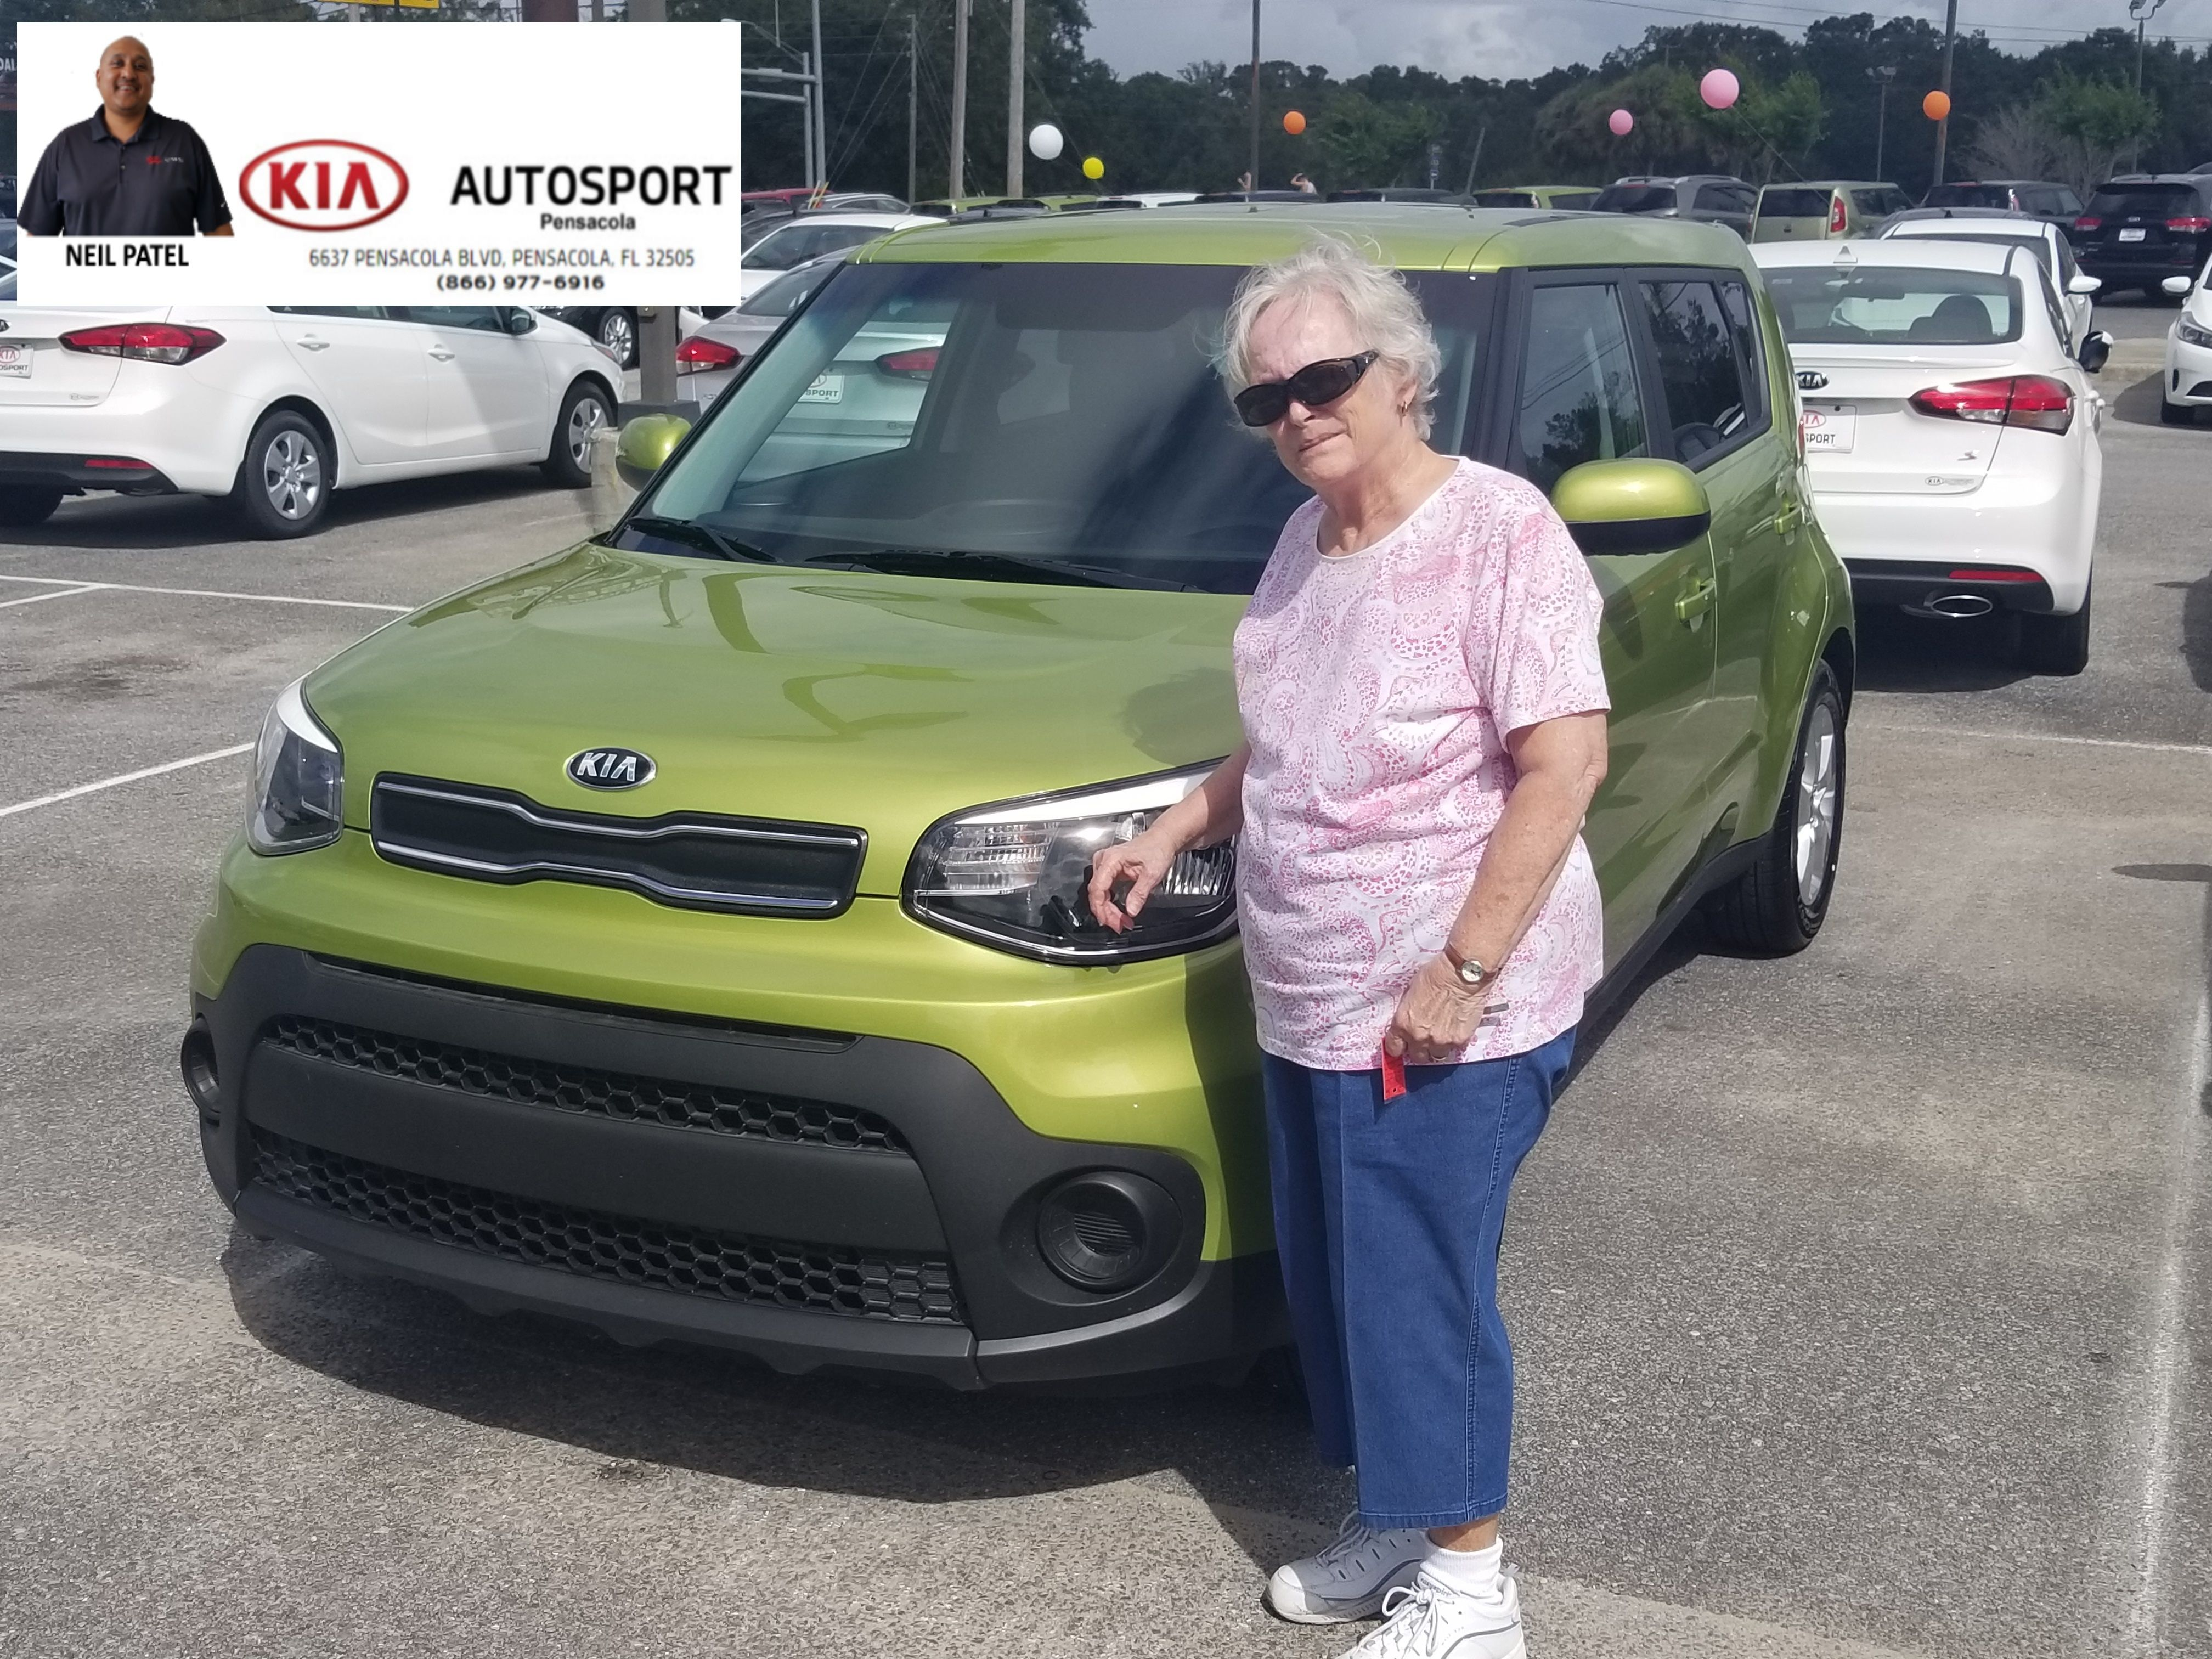 A HUGE THANK YOU Goes Out To Ms. Juanita Donaldson On The Purchase Of Her  BRAND NEW 2017 KIA Soul From Neil Patel And KIA AutoSport Of Pensacola!!